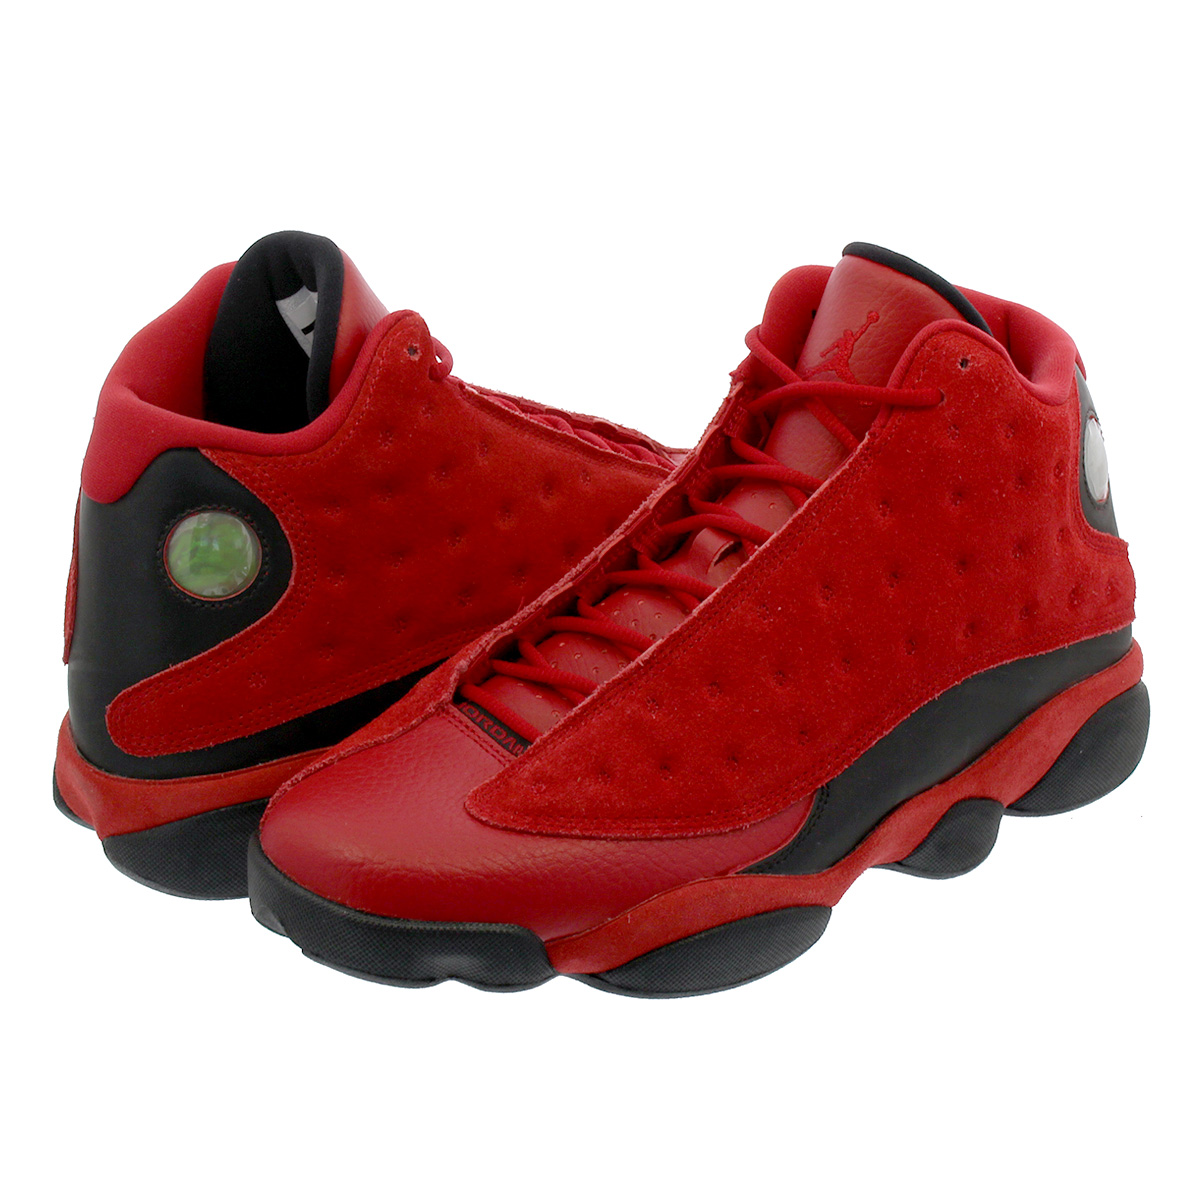 a0487143db9 SELECT SHOP LOWTEX: NIKE AIR JORDAN 13 RETRO GYM RED/BLACK 888,164 ...